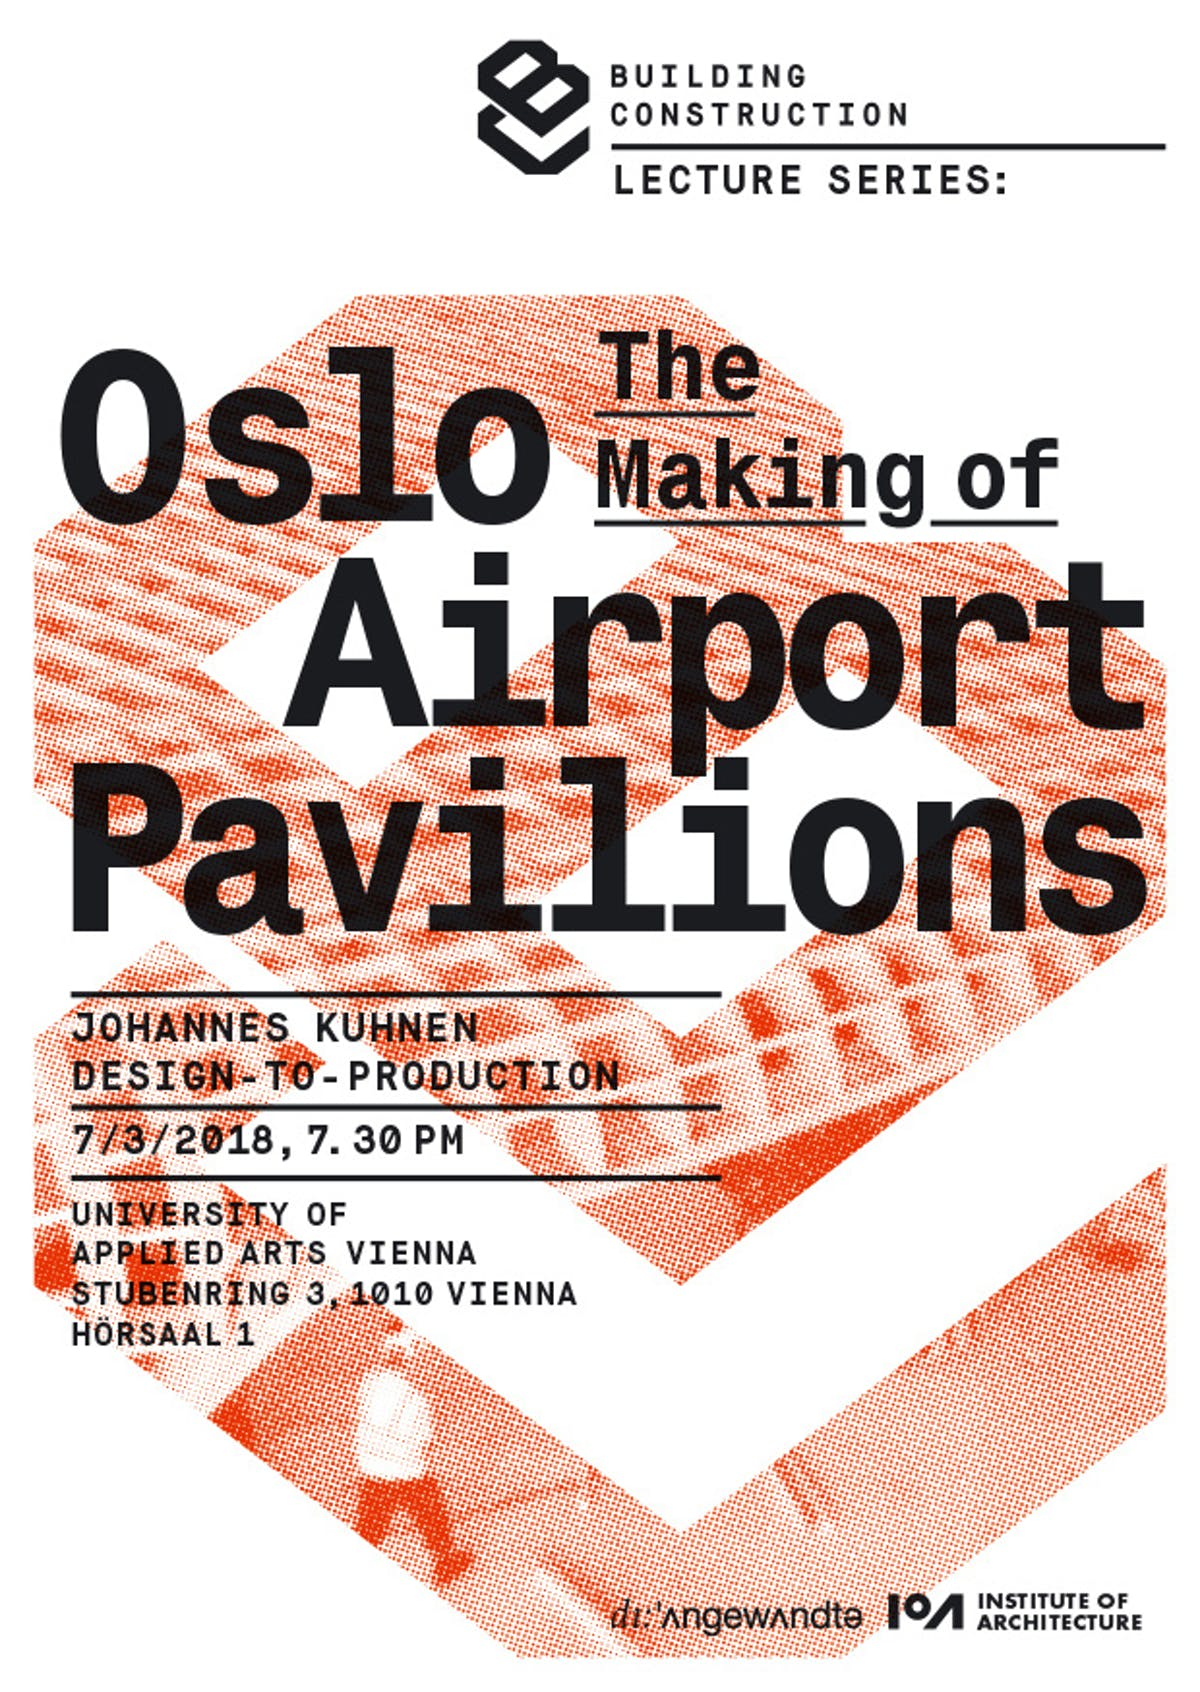 Lecture Johannes Kuhnen The Making Of Oslo Airport Pavilion Institute Of Architecture At The University Of Applied Arts Vienna Archinect